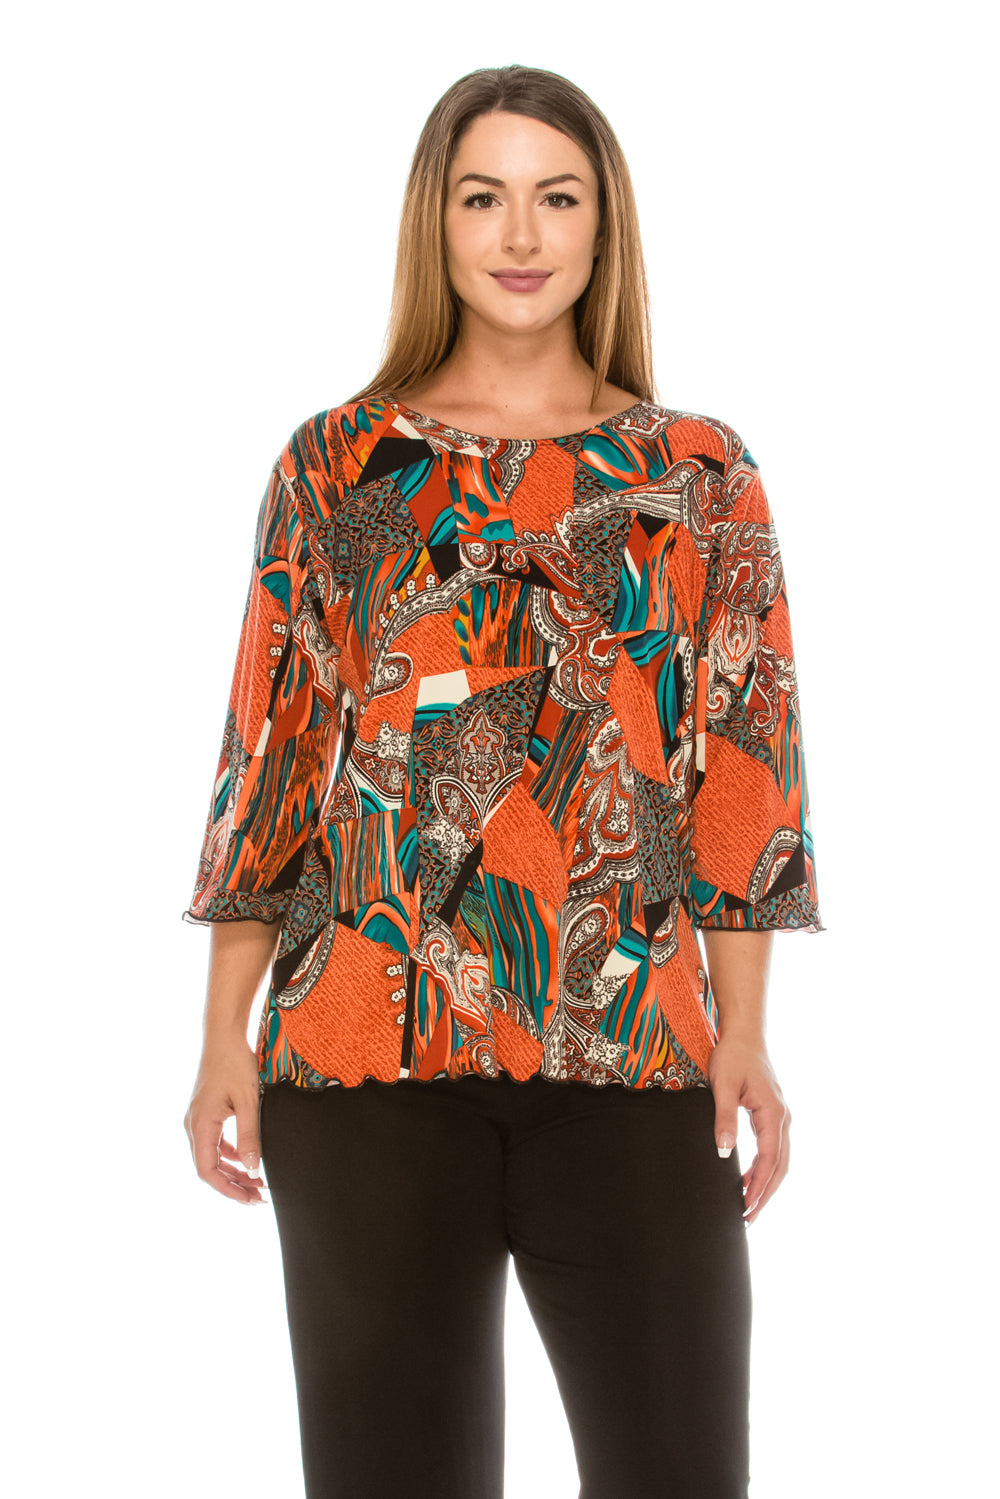 Jostar Women's HIT Merrow Top Three Quarter Print, 158HT-QP-W108 - Jostar Online